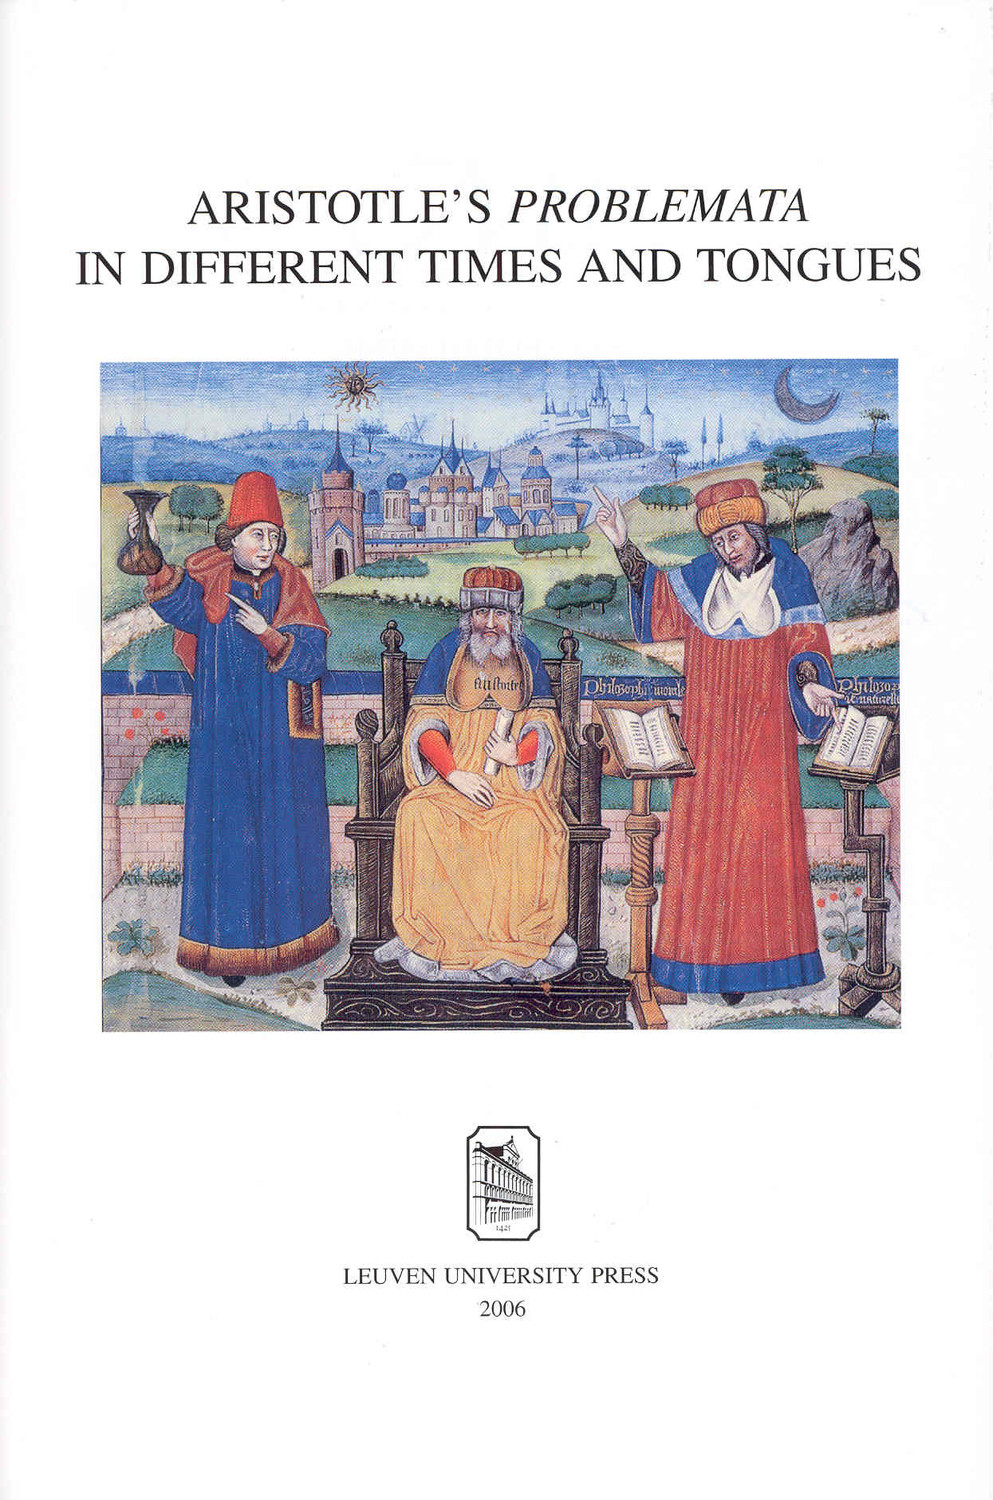 Aristotle's Problemata in Different Times and Tongues